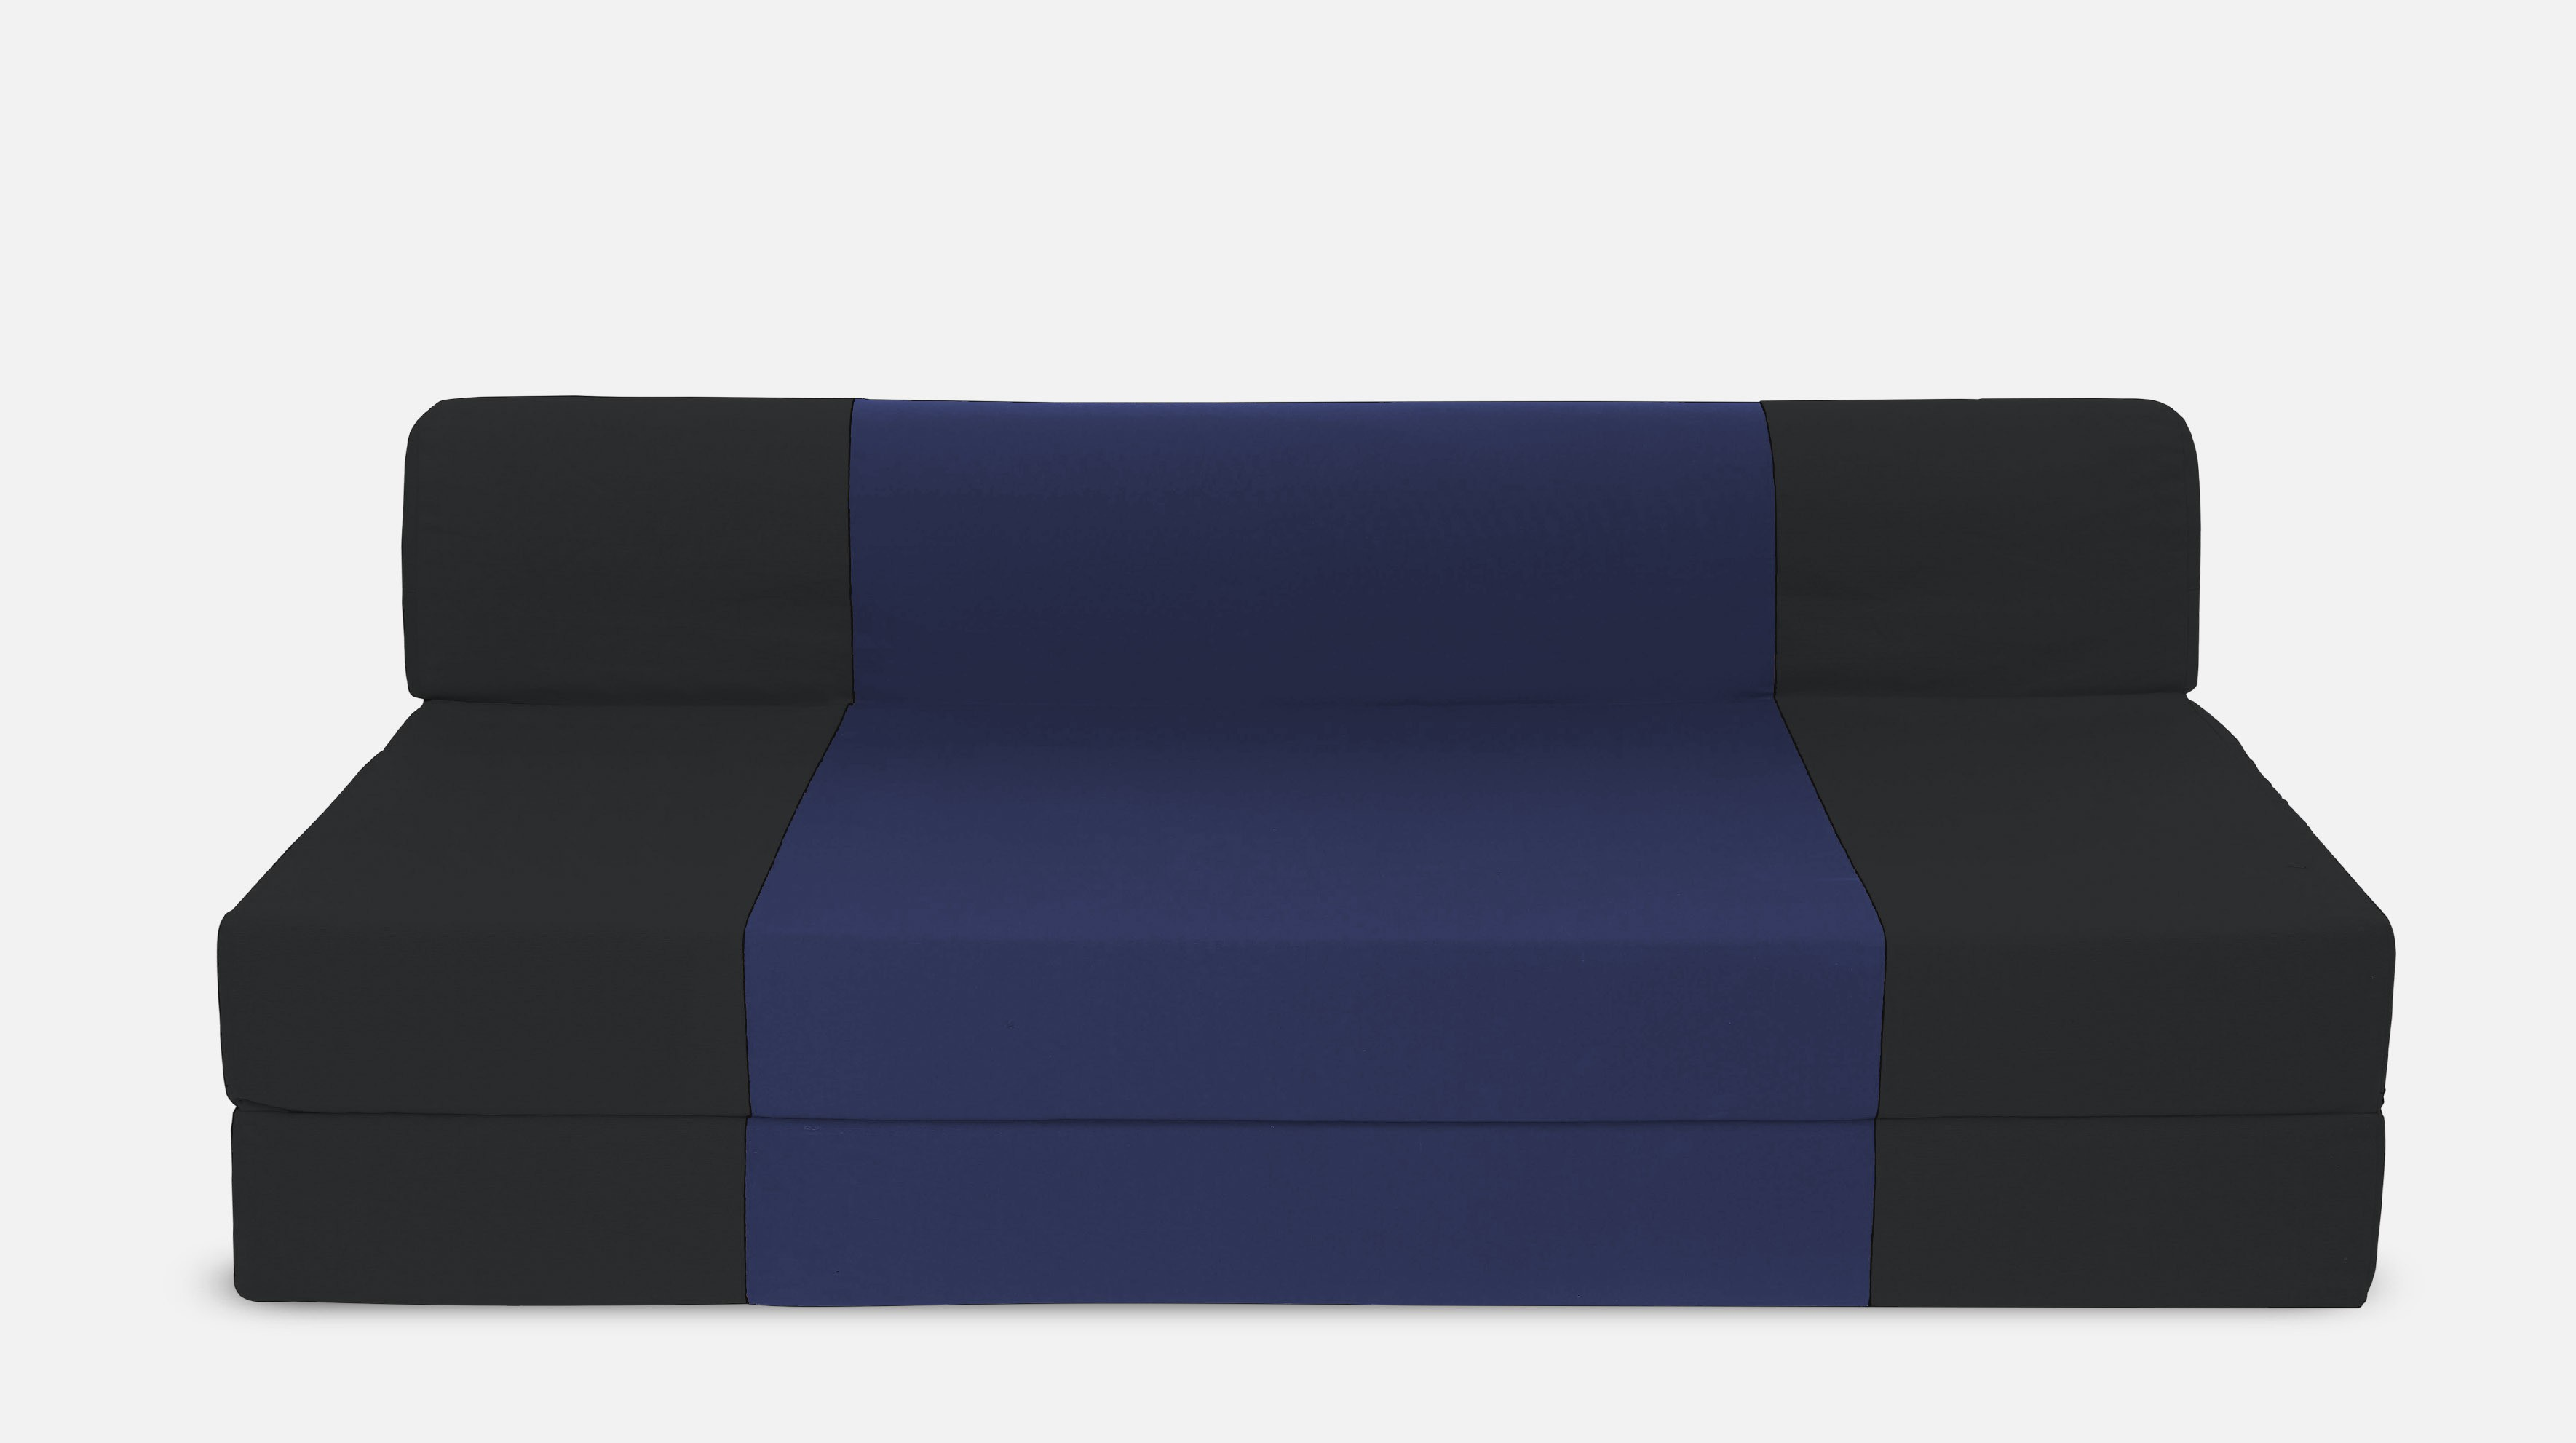 Dolphin Bean Bags Single Fabric Sofa Bed(Finish Color - Black And N.Blue Mechanism Type - Fold Out)